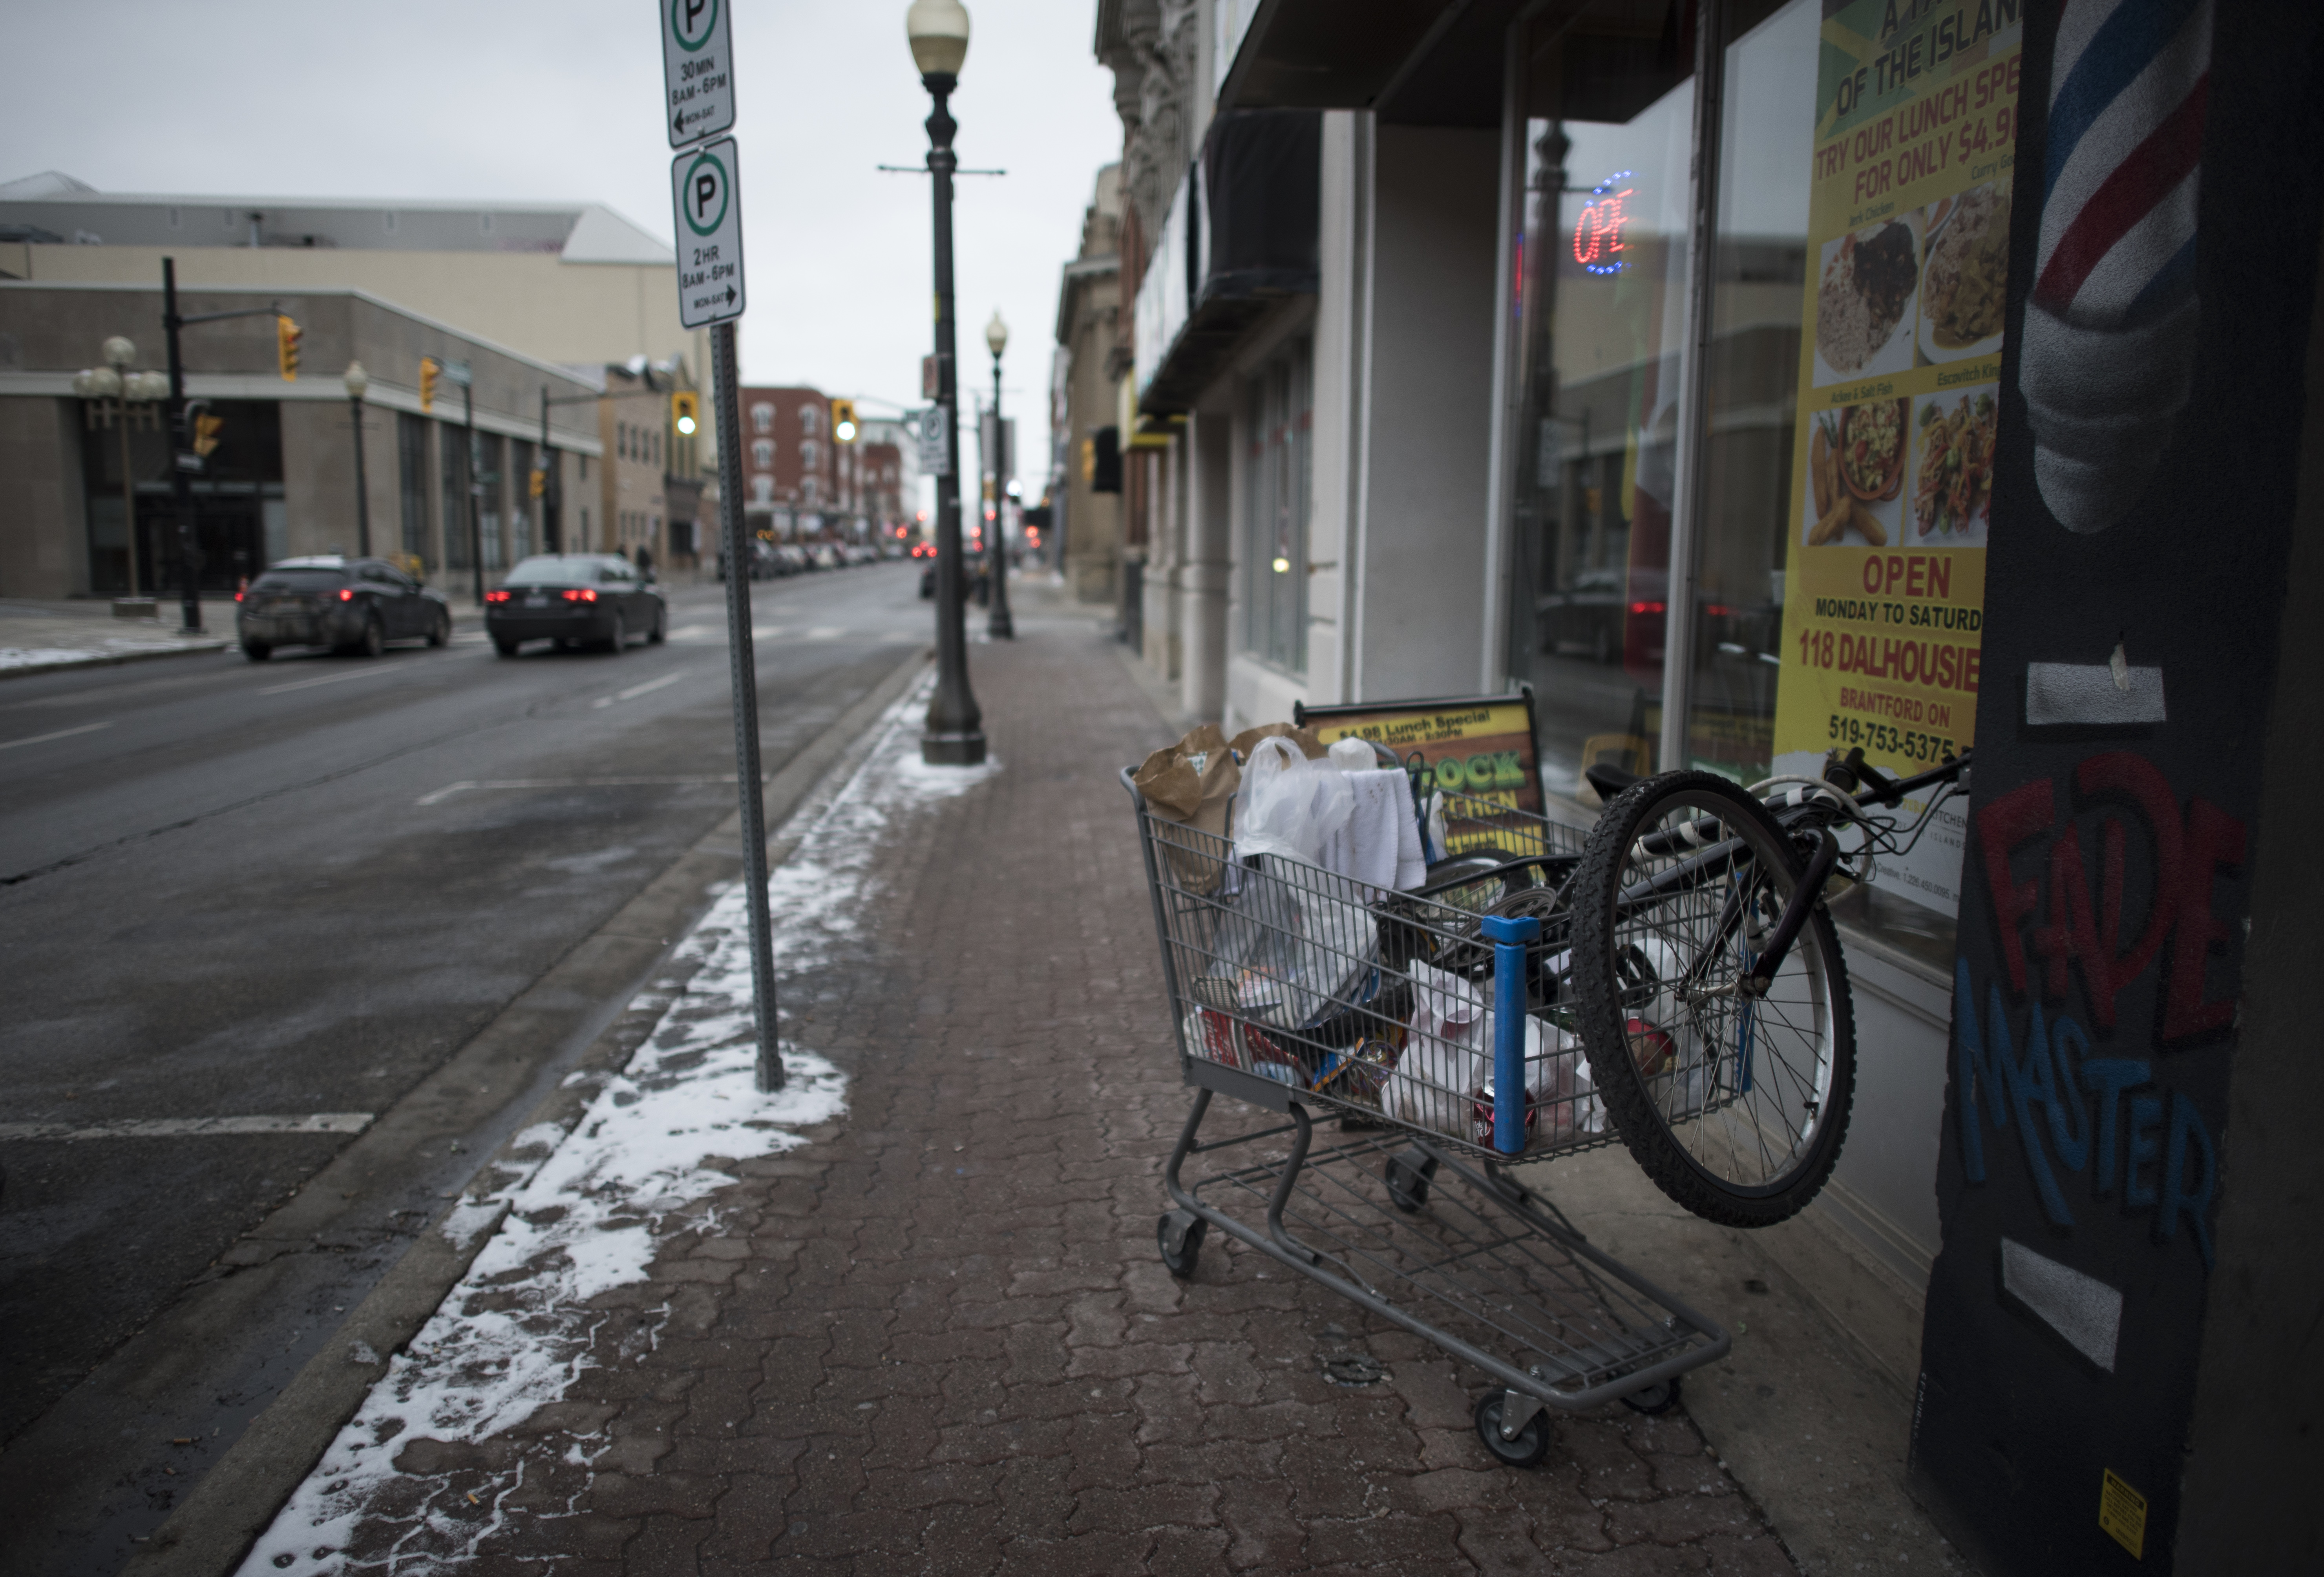 A shopping cart, filled with personal belongings and items picked up around downtown, lies unattended in Brantford. Signs of the city's poverty and homelessness are especially pronounced downtown.